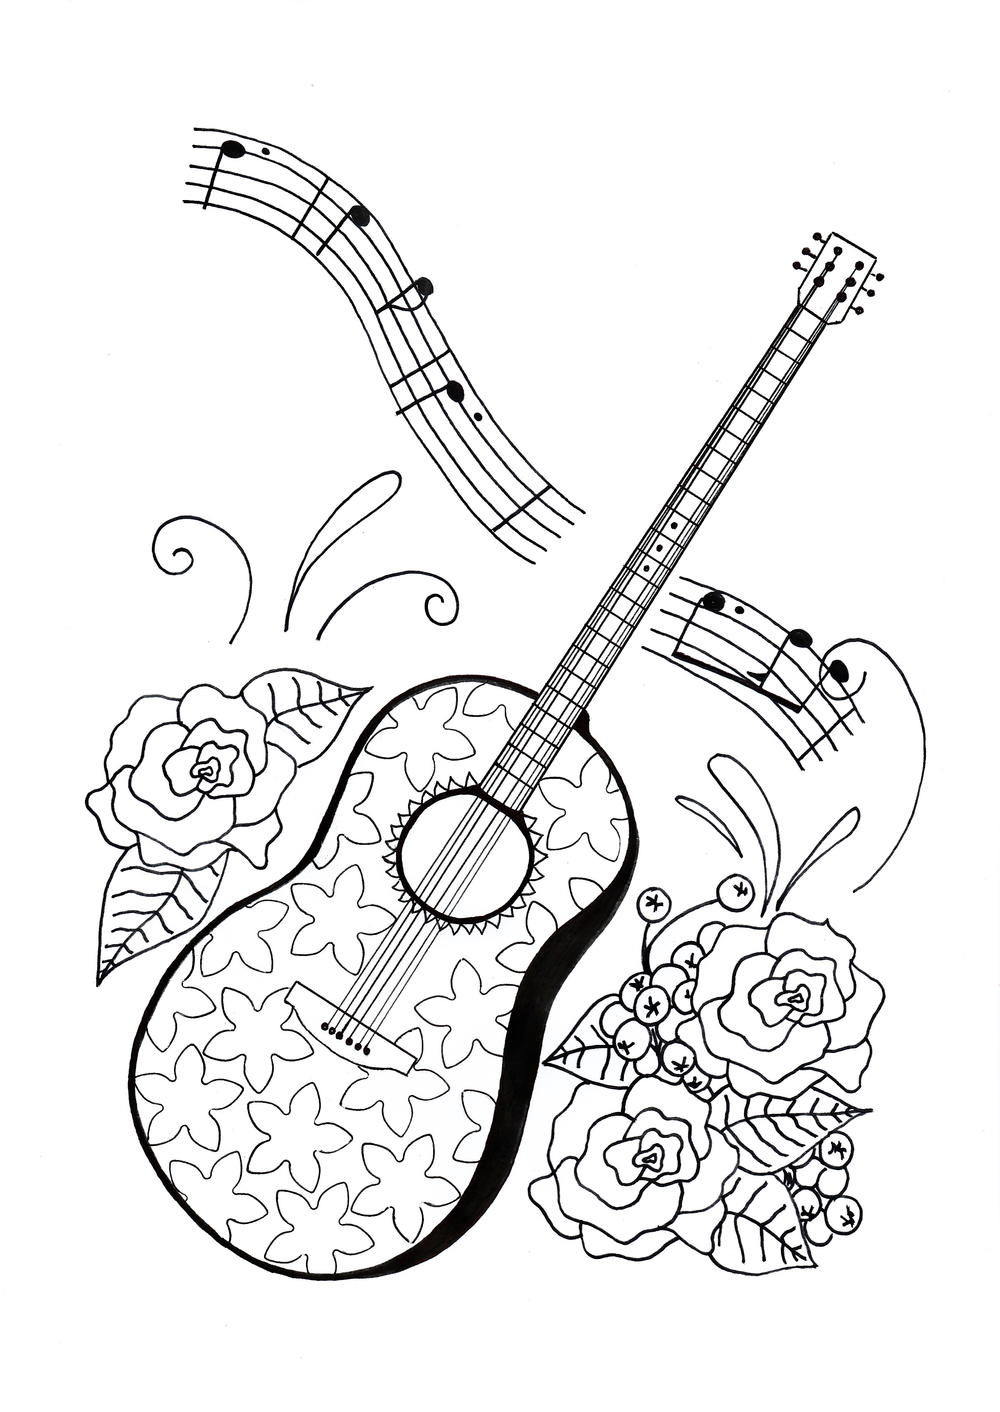 For the Love of Music Adult Coloring Page | FaveCrafts.com